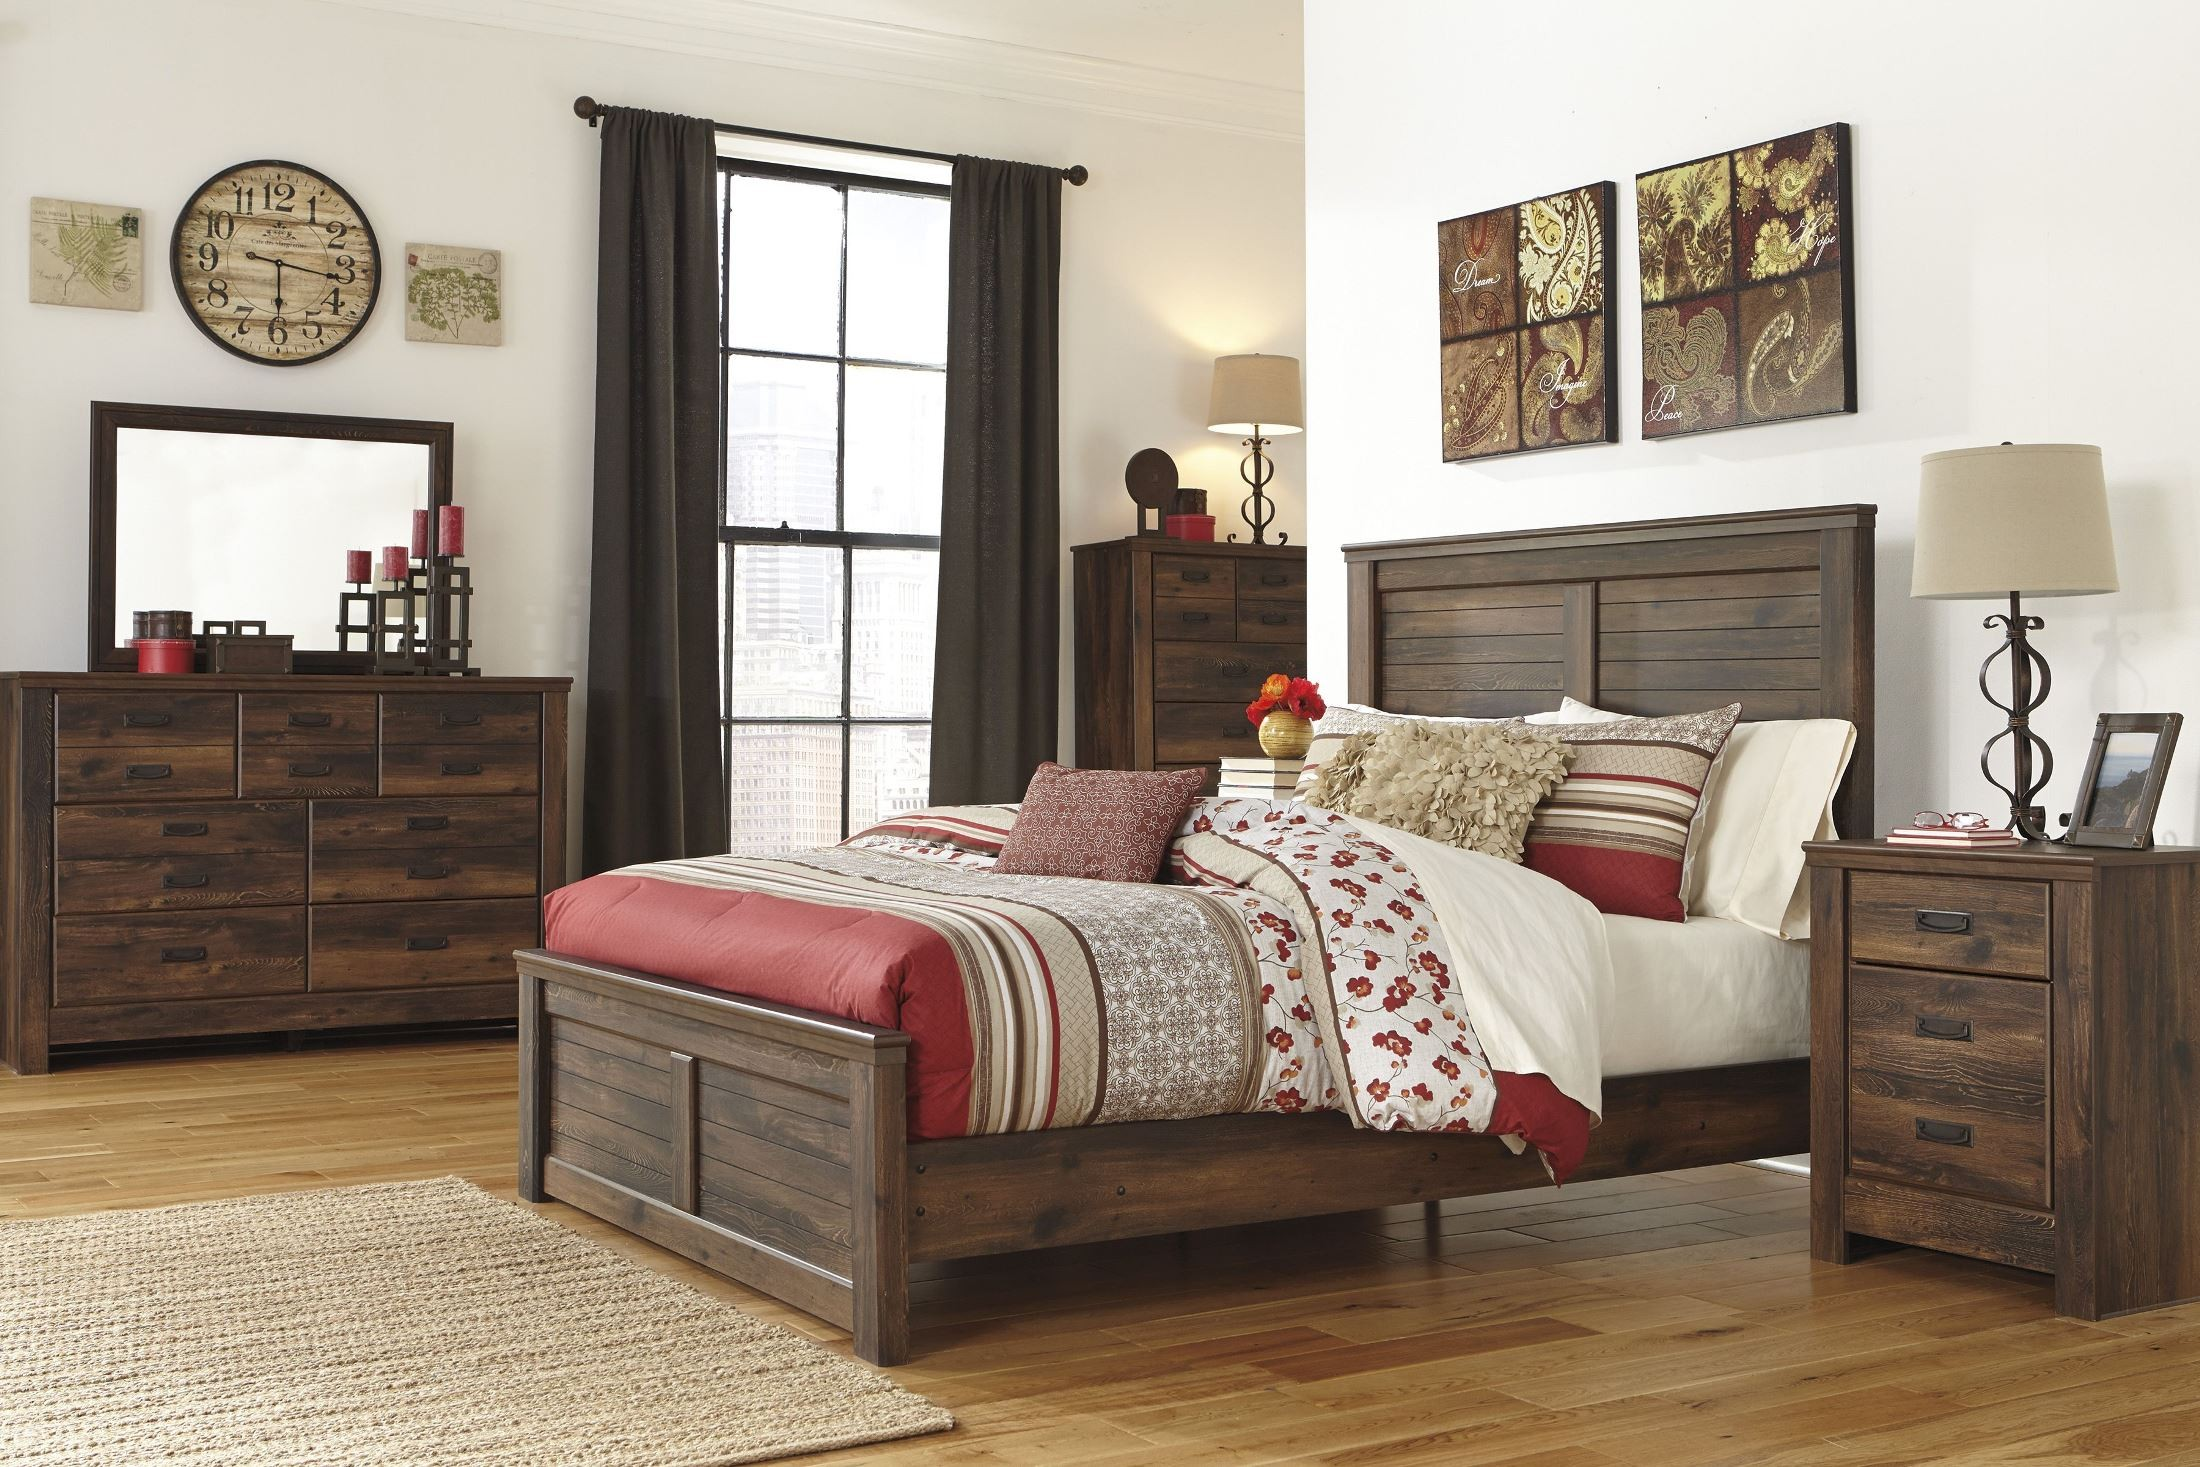 Quinden Panel Bedroom Set from Ashley (B246-57-54-98) | Coleman ...